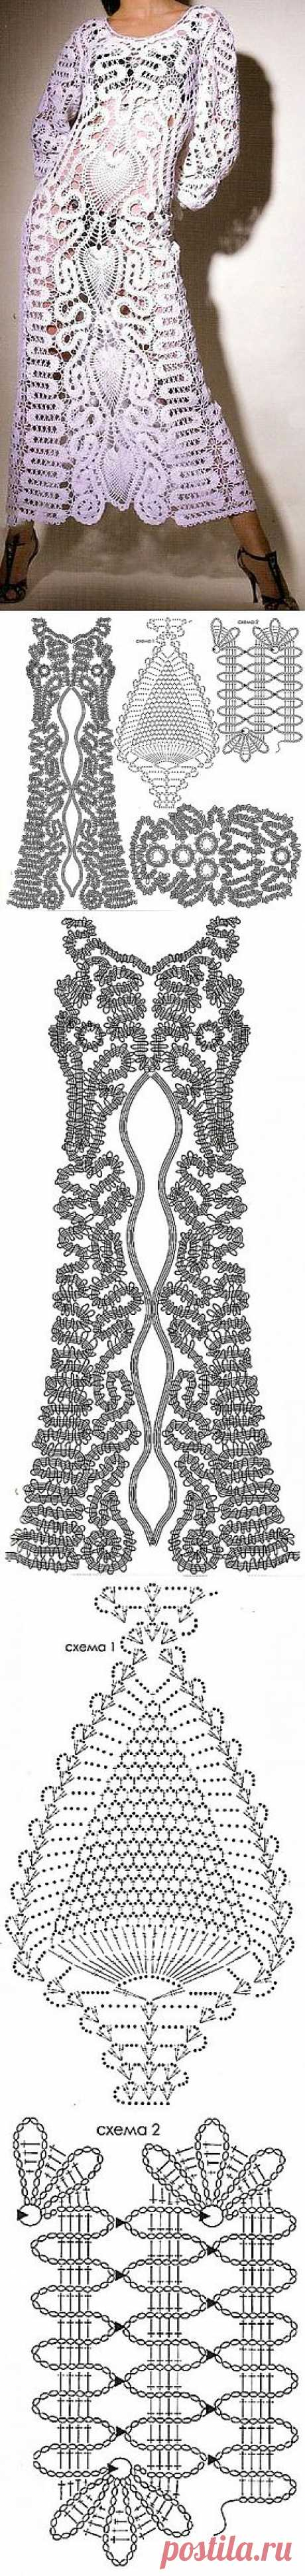 The dress connected in equipment of bryuggsky lace.